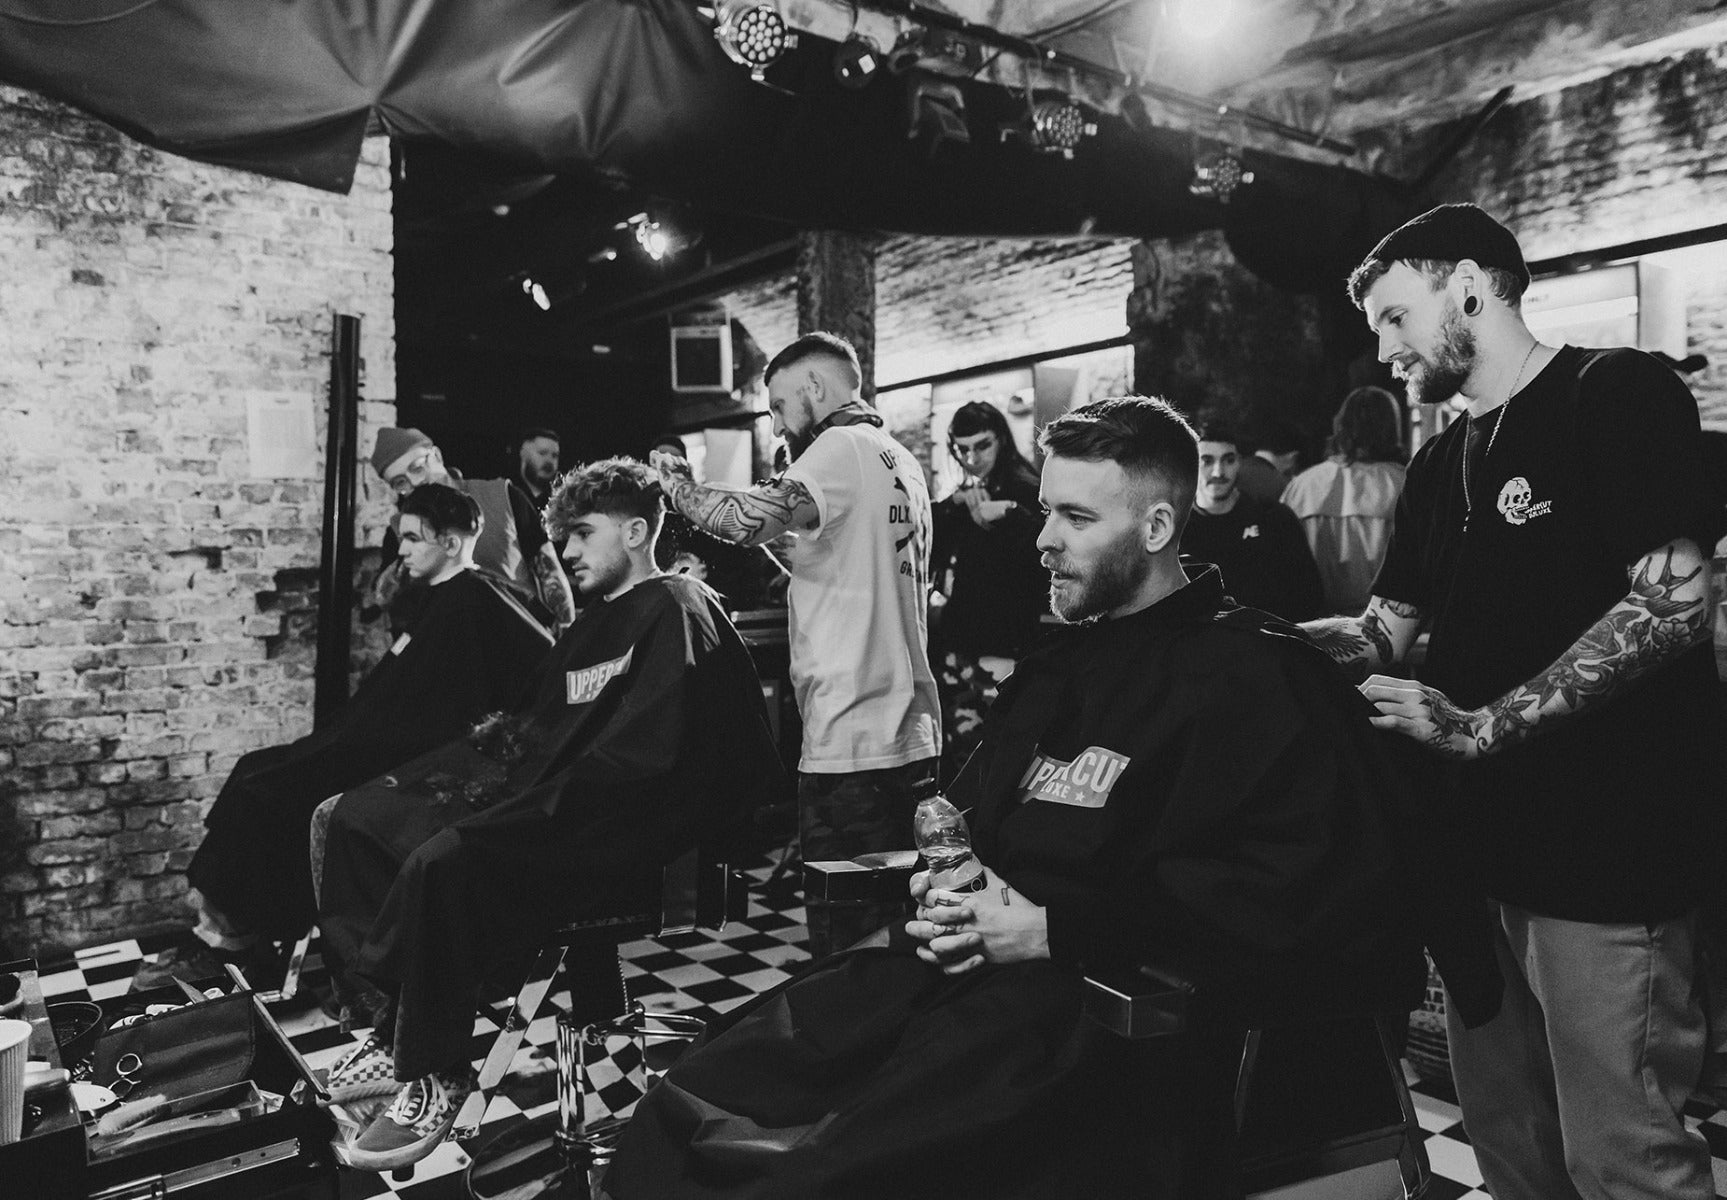 Men in barberchairs getting haircuts